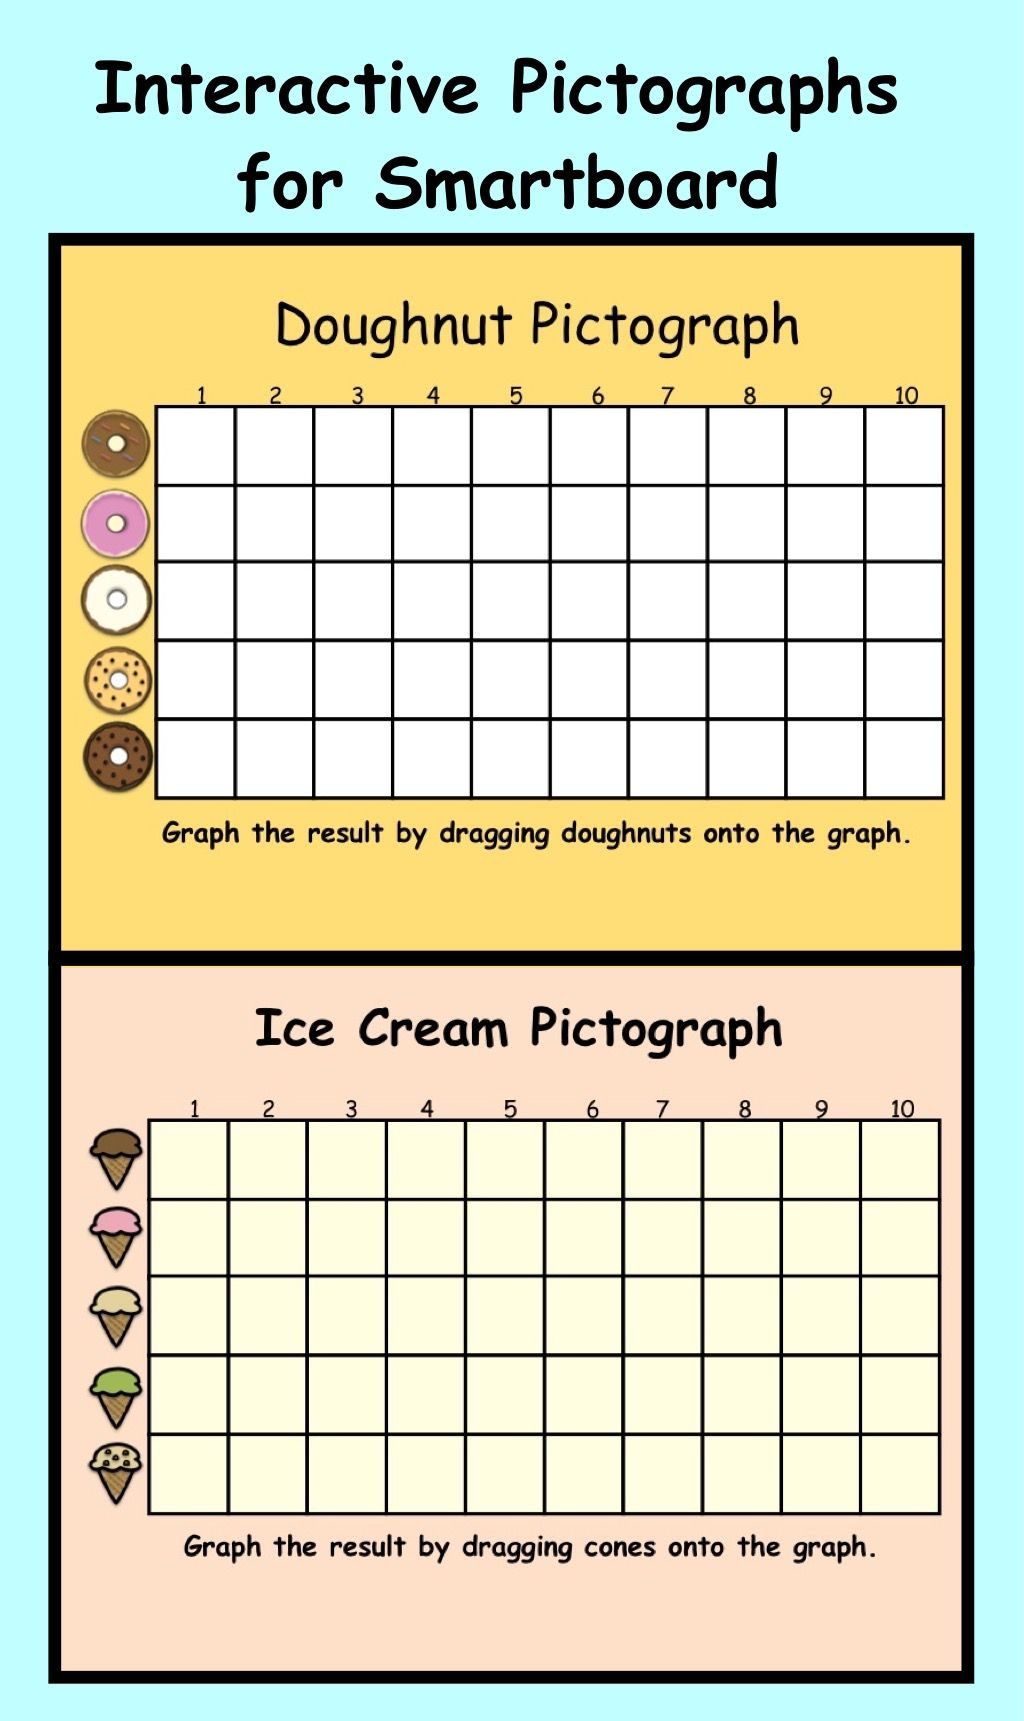 hight resolution of Interactive Pictographs for Smartboard   Smart board